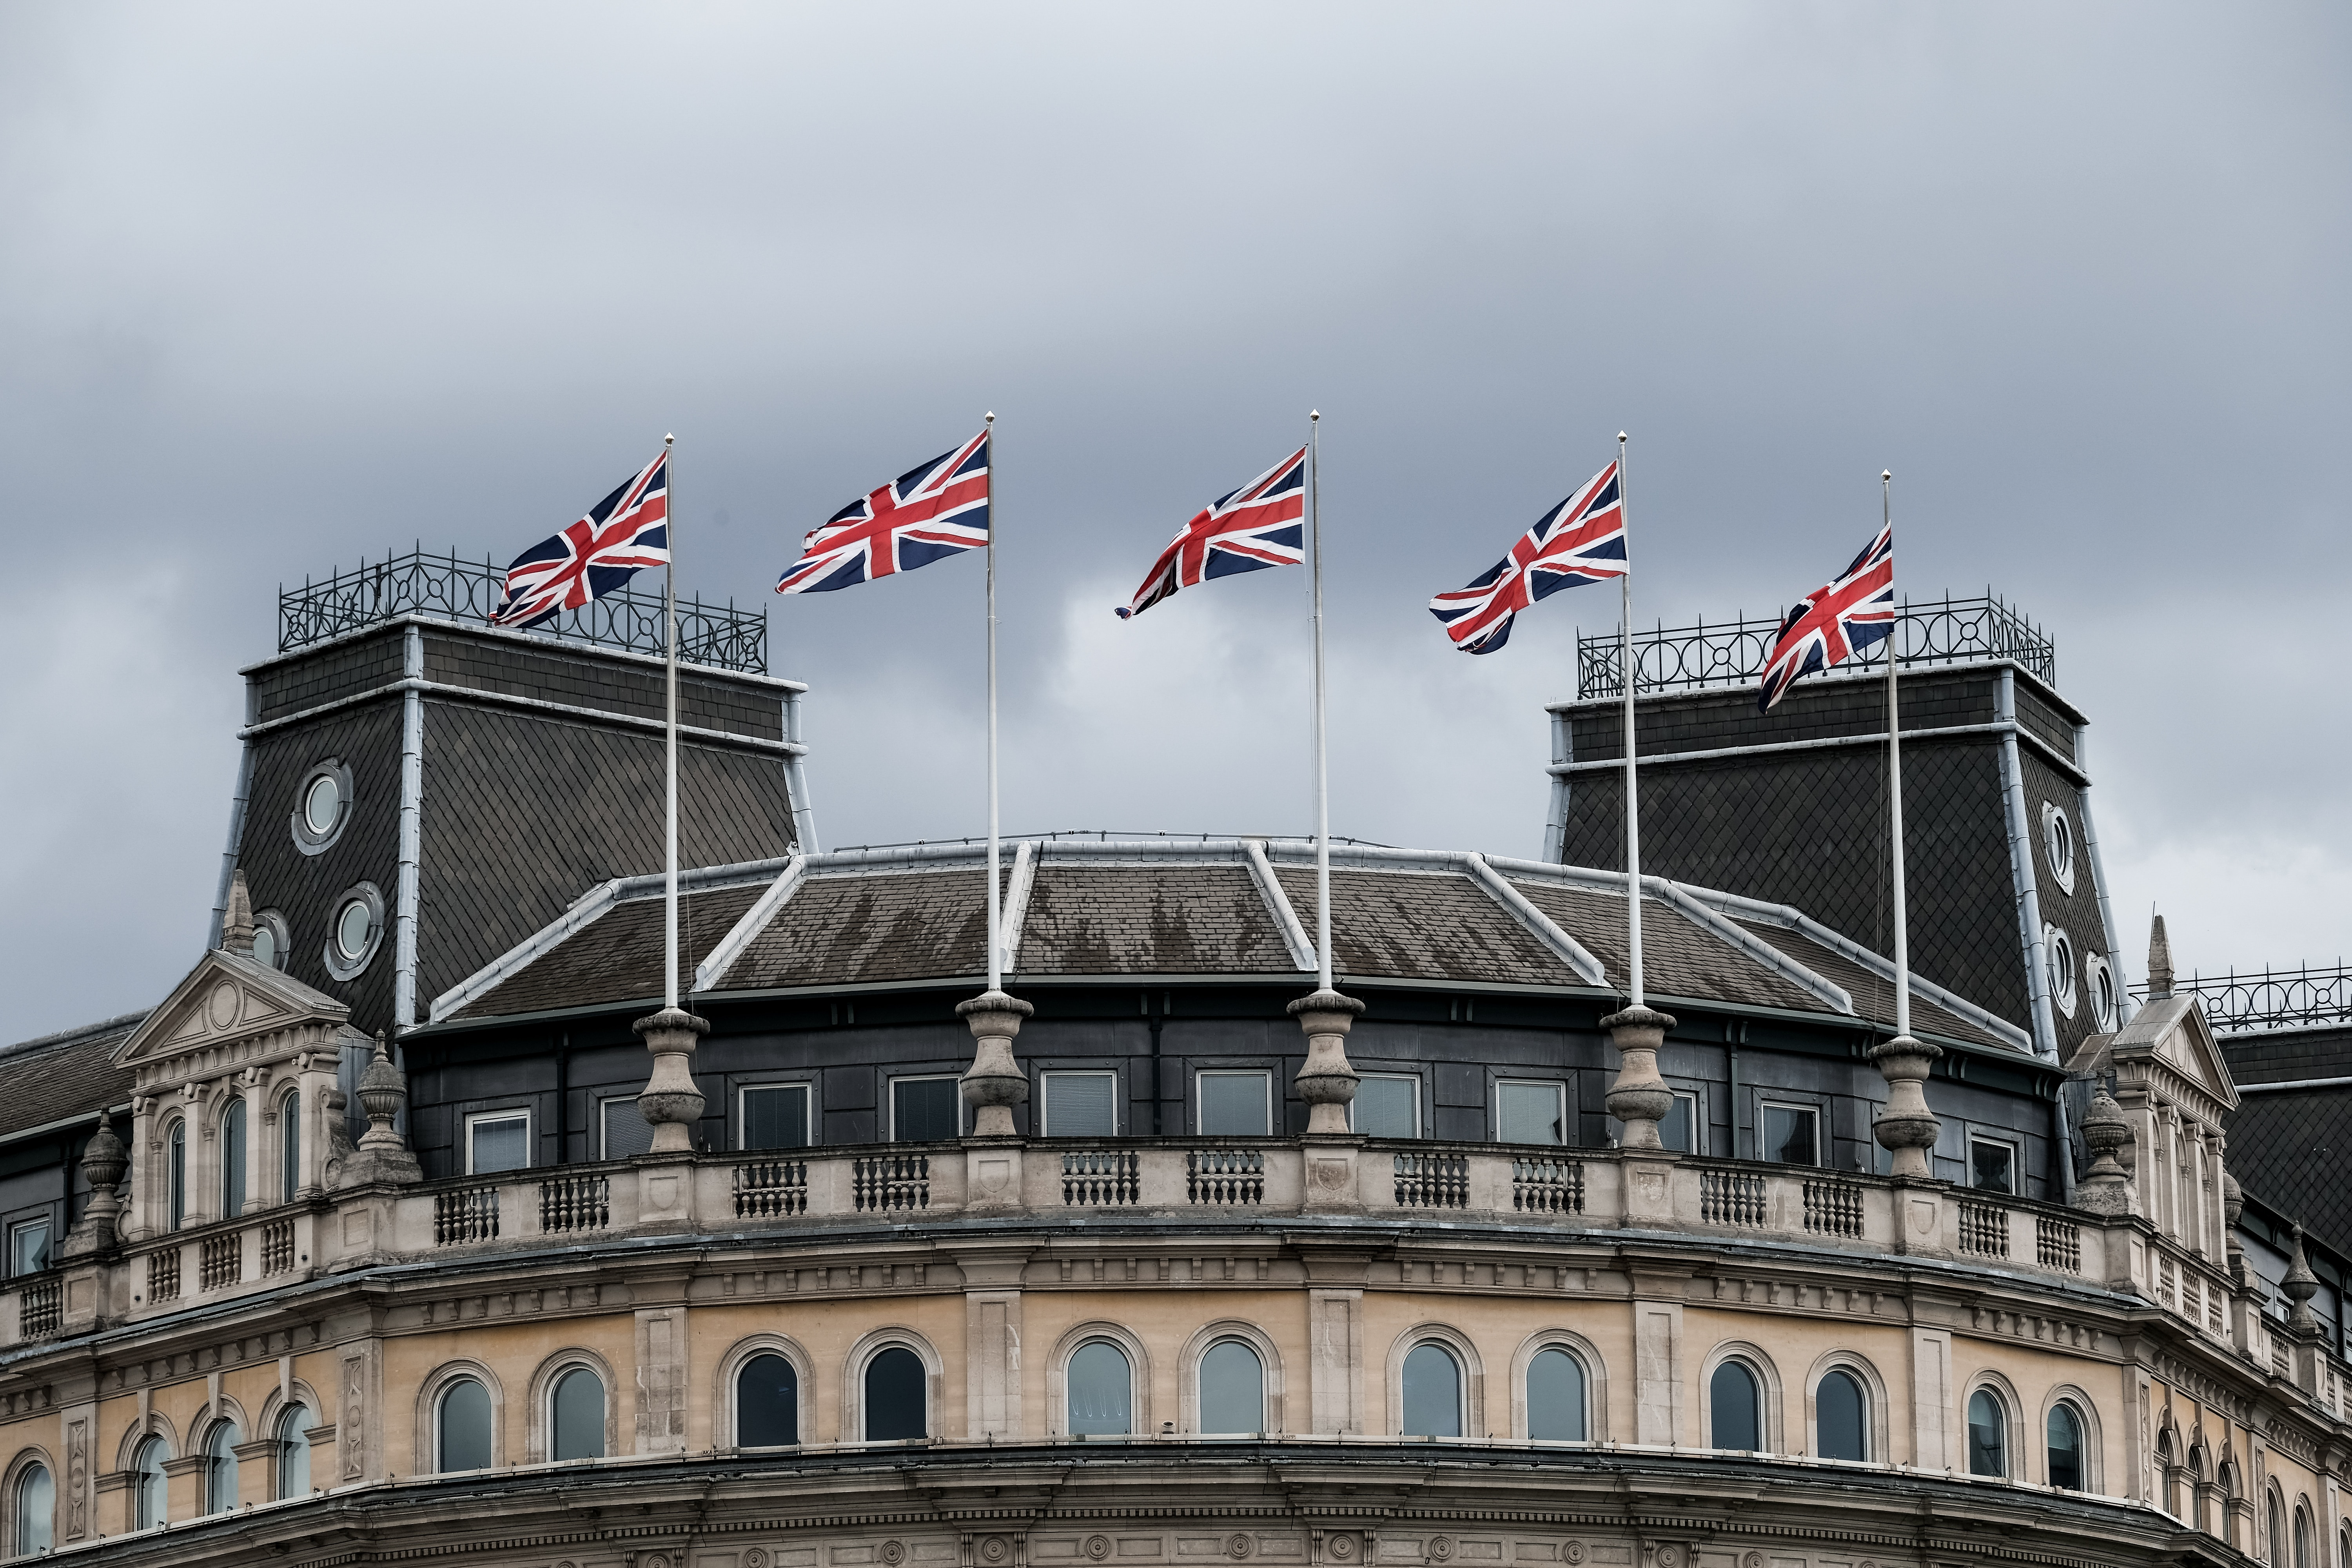 How Brexit will impact financial reporting in UK (Image from https://unsplash.com/photos/MKaQ4KOEssk)